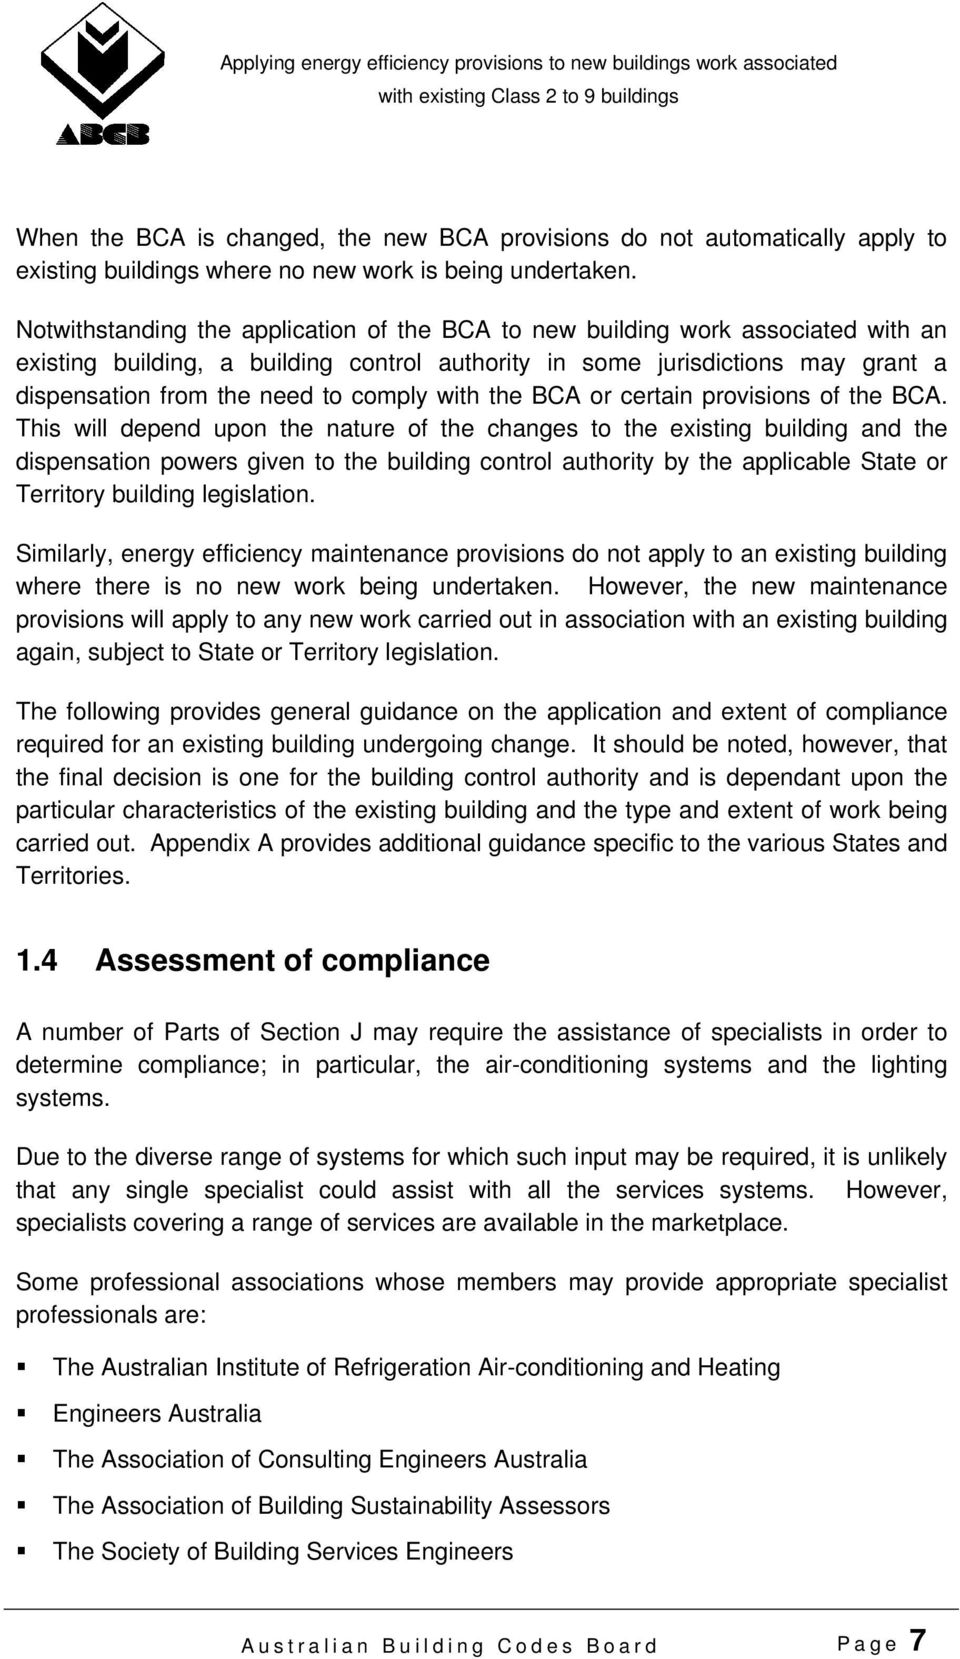 comply with the BCA or certain provisions of the BCA.